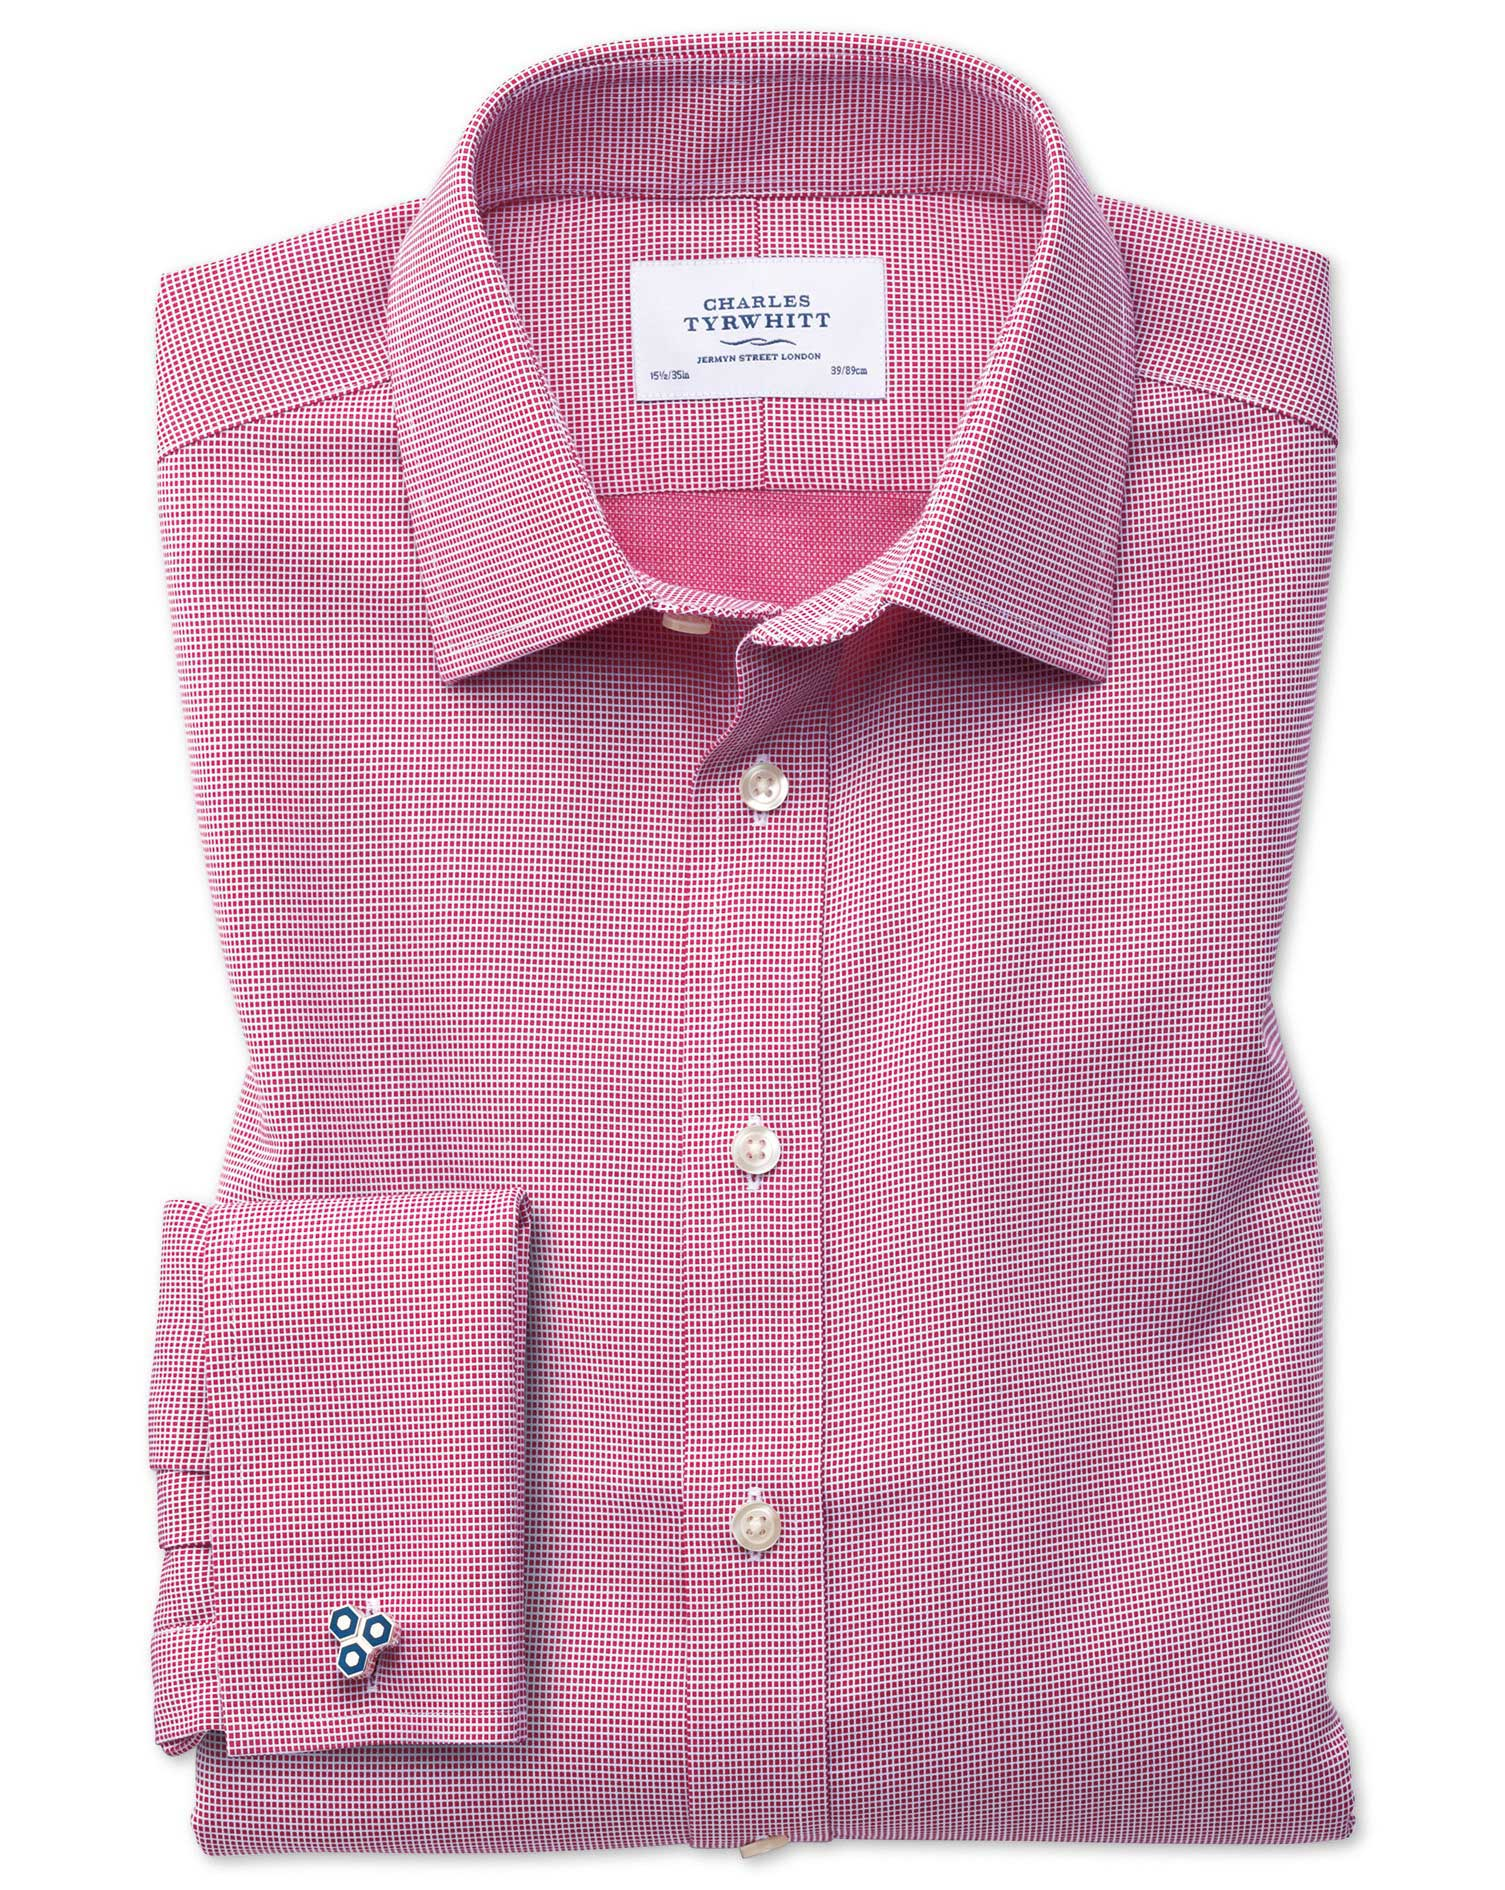 Slim Fit Non-Iron Square Weave Magenta Cotton Formal Shirt Single Cuff Size 15.5/33 by Charles Tyrwh